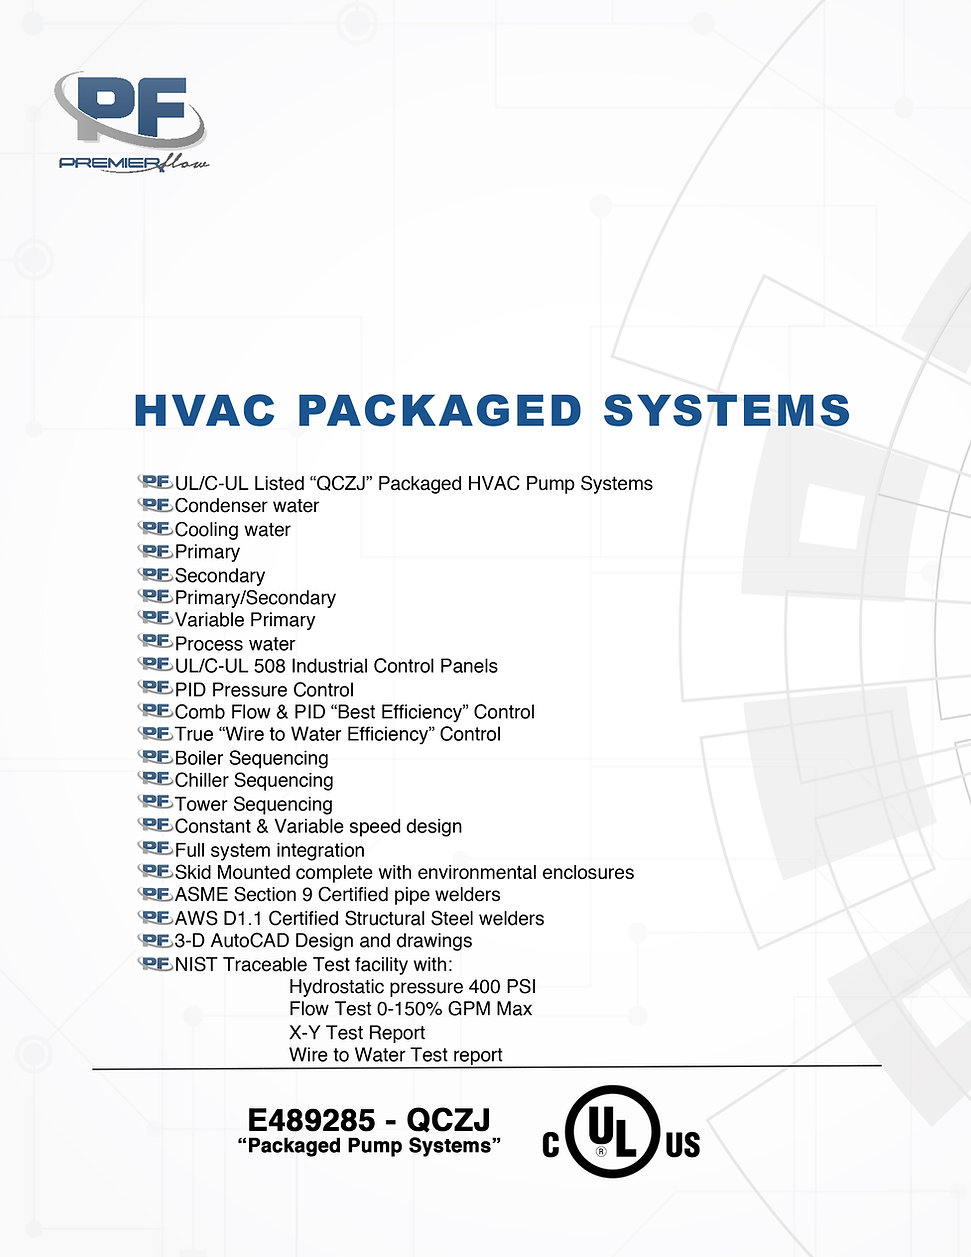 HVAC Packaged Systems.jpg